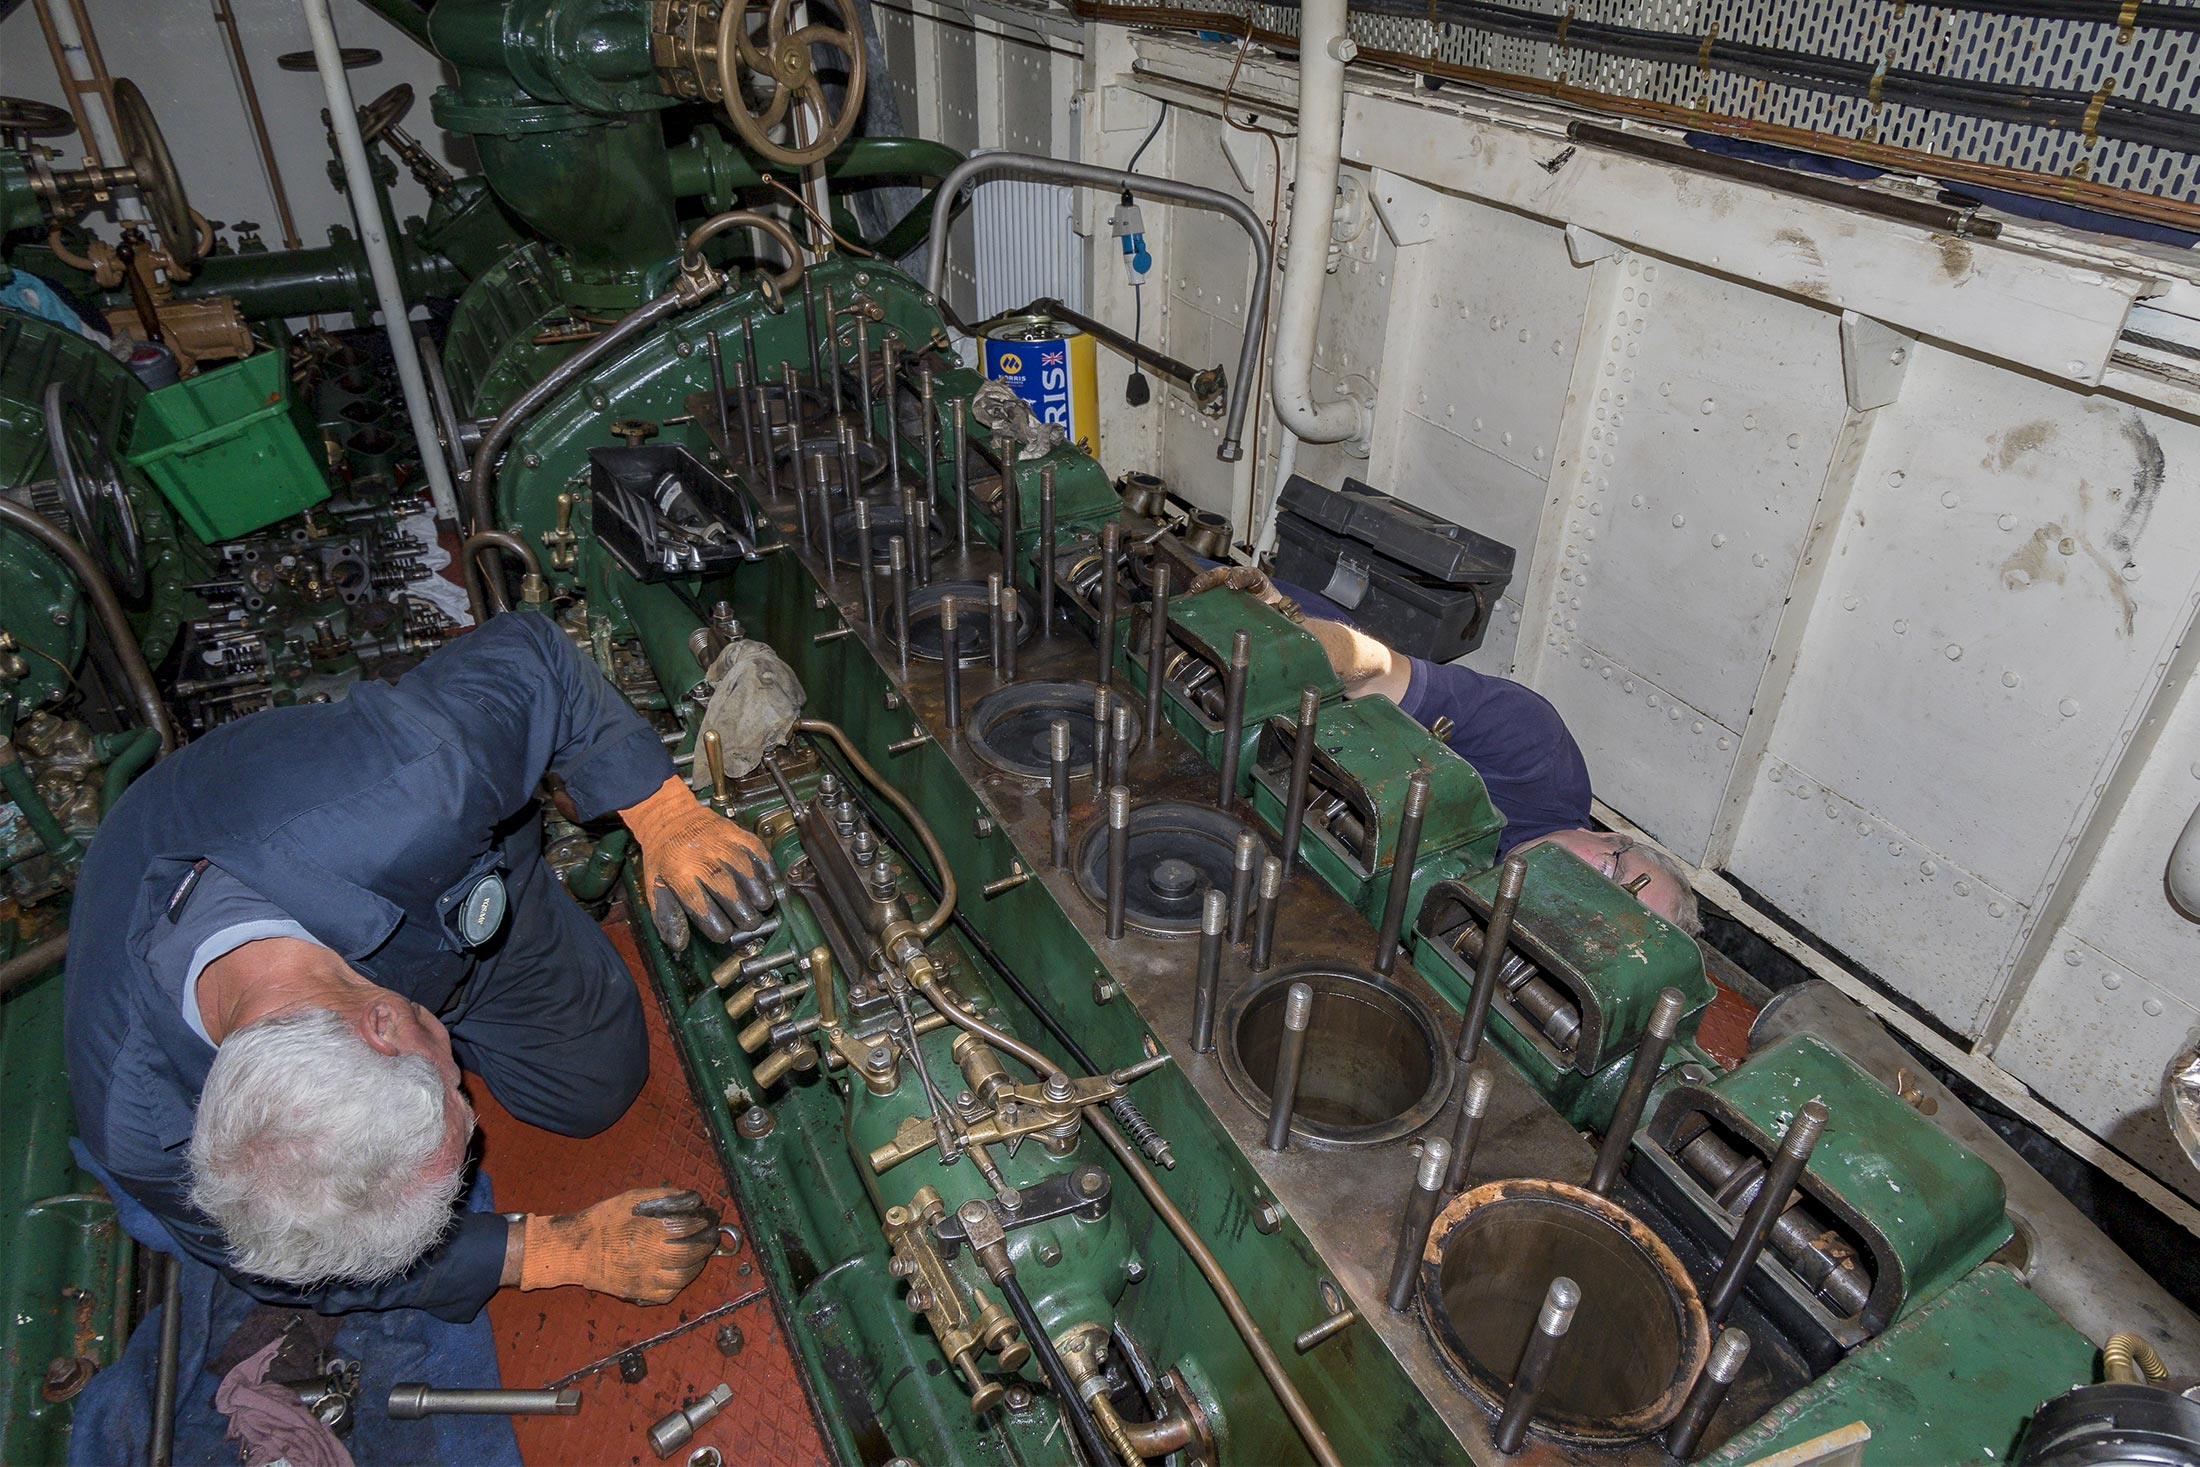 Massey Shaw engine repairs underway